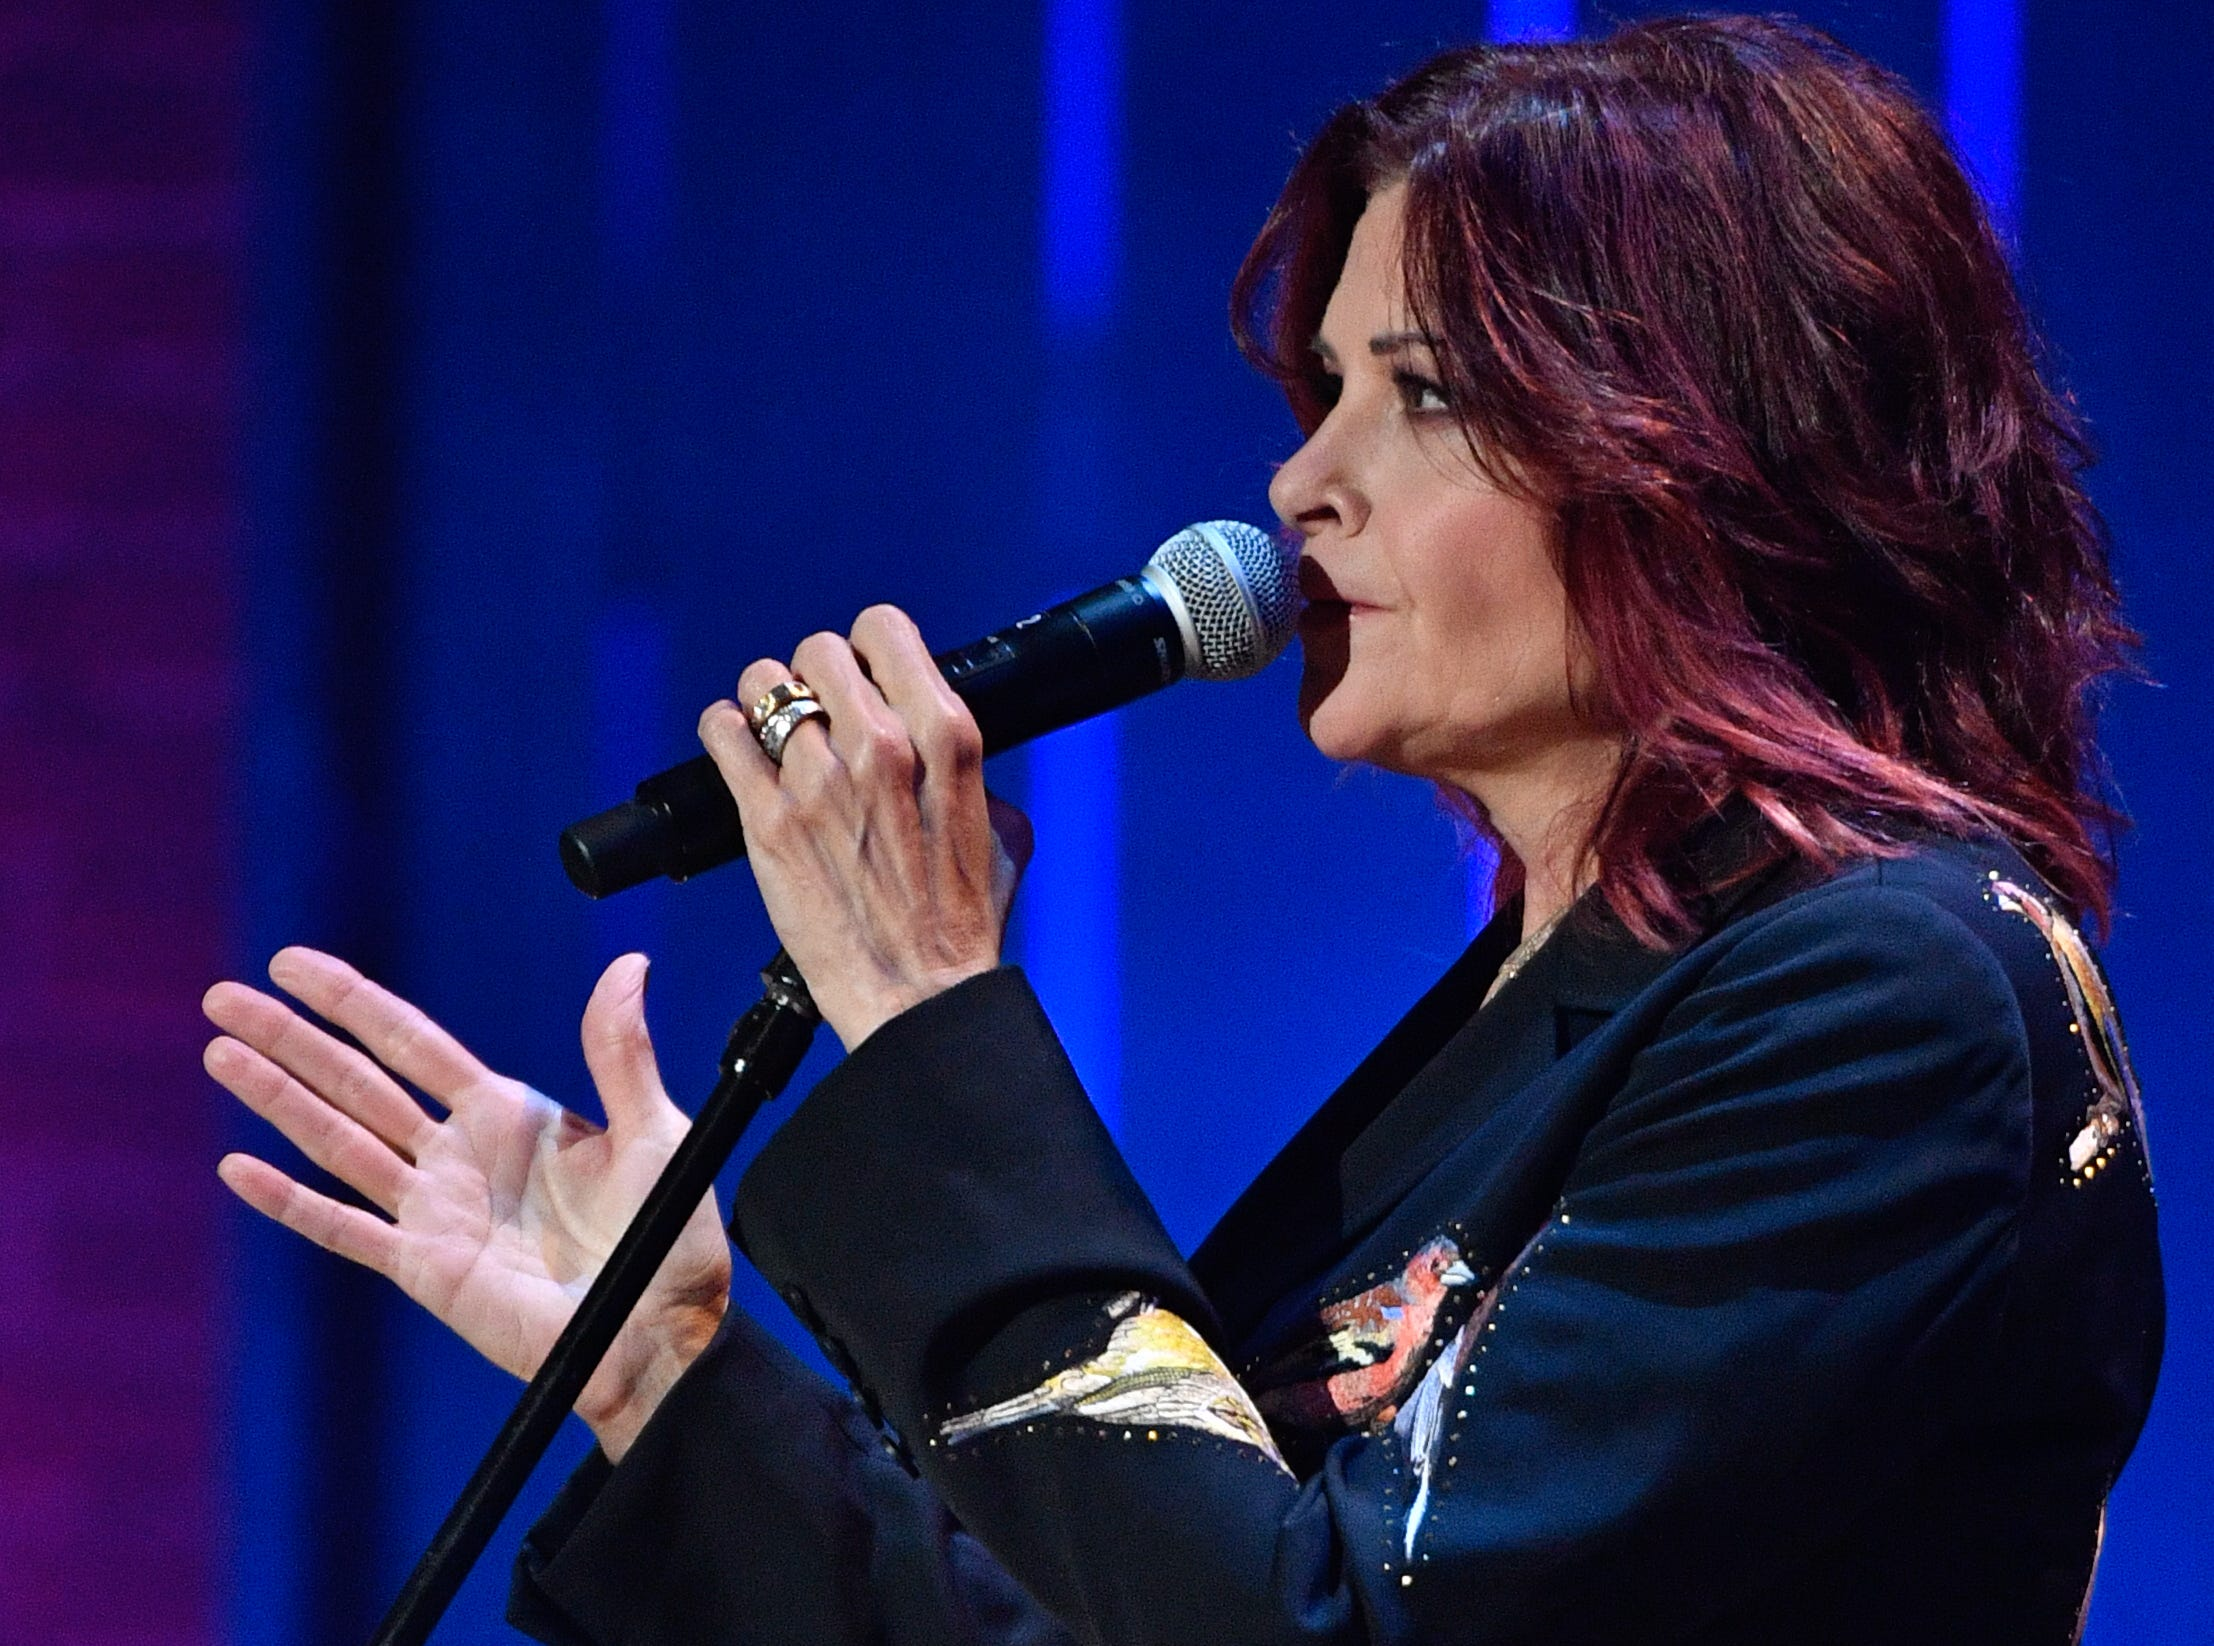 Rosanne Cash performs during the 2018 Americana Honors and Awards show at the Ryman Auditorium in Nashville, Tenn., Wednesday, Sept. 12, 2018.